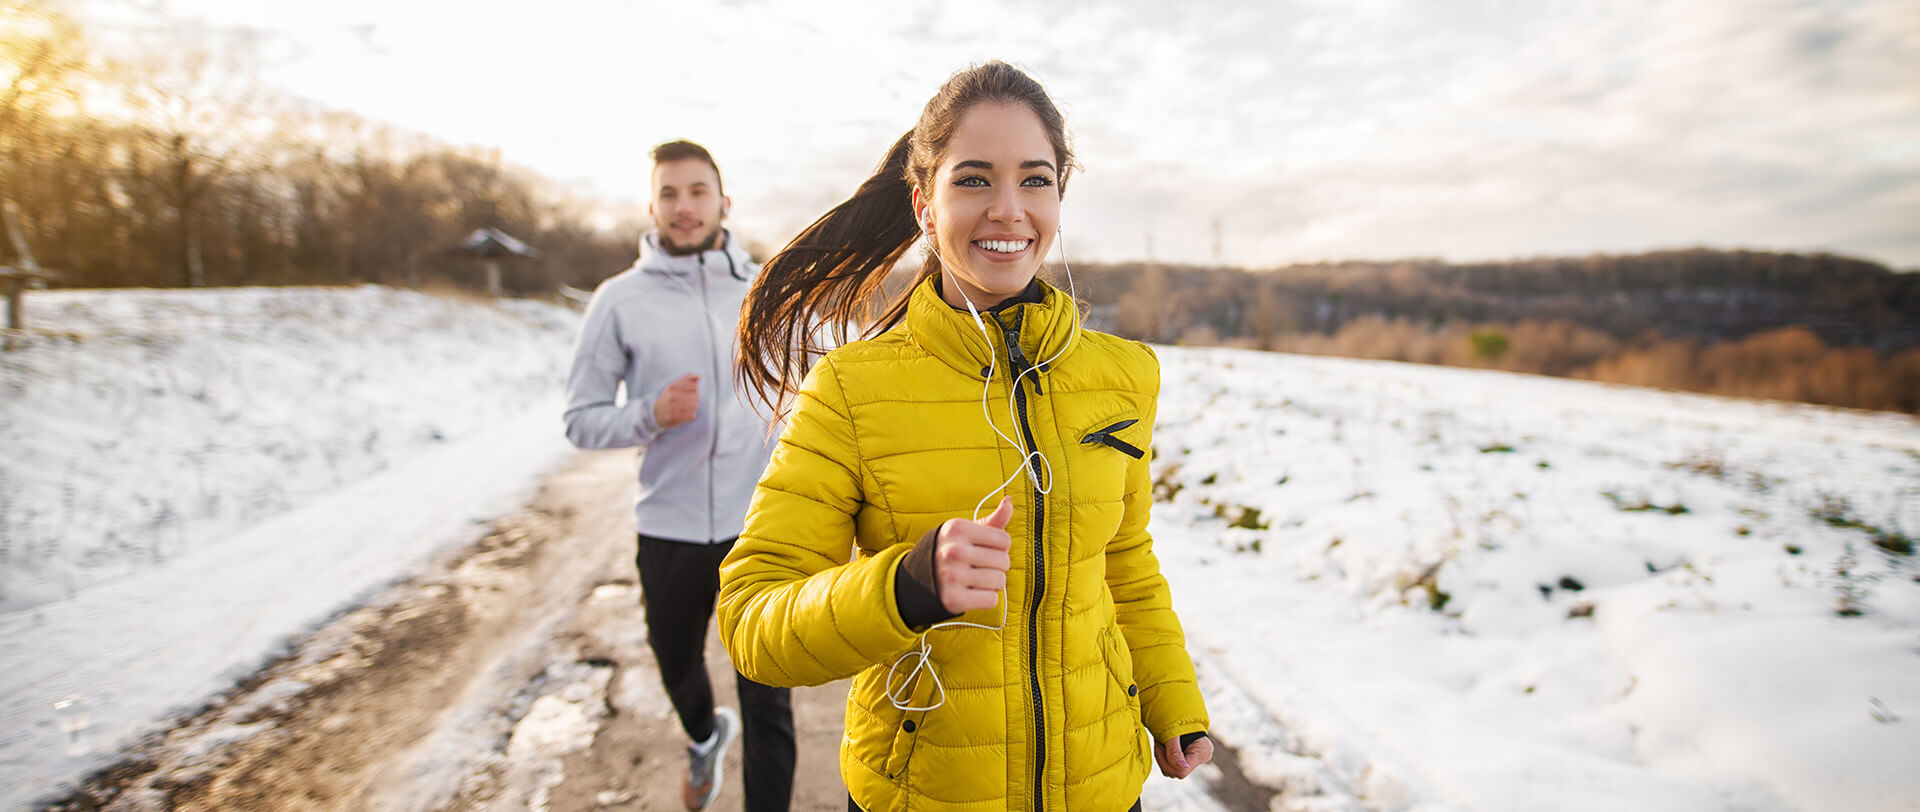 Creating a Winter Workout advise